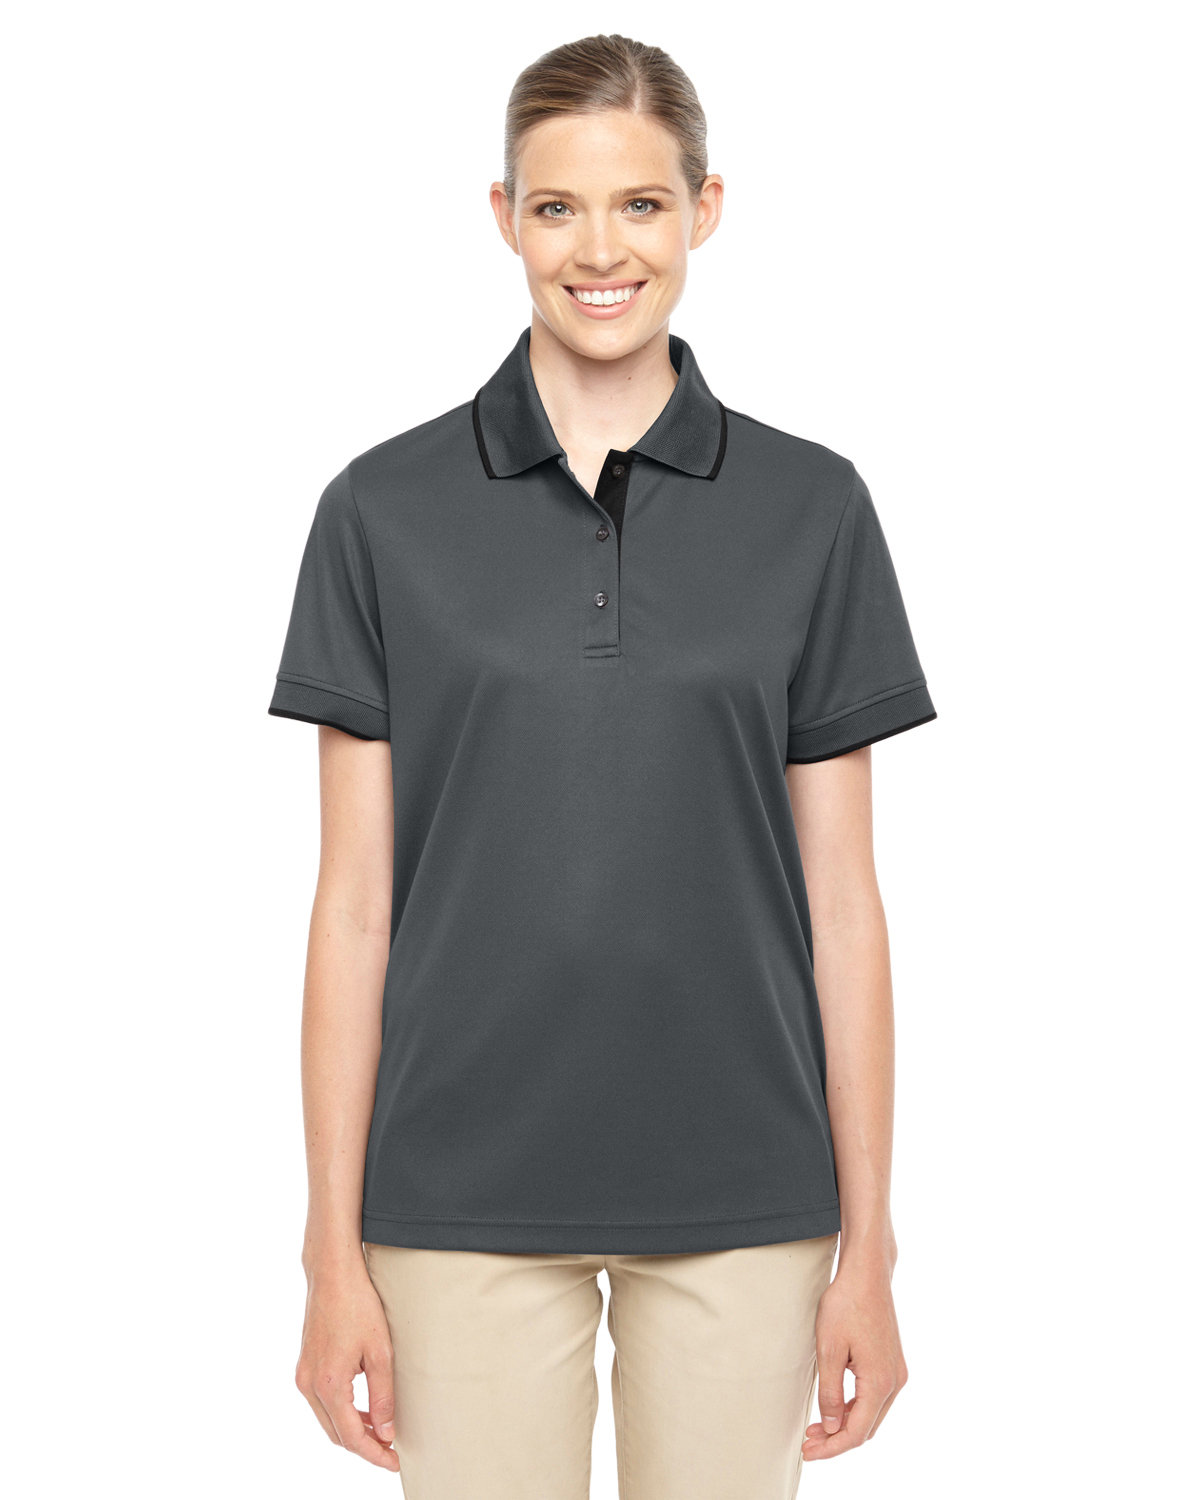 Core 365 Ladies' Motive Performance Piqué Polo with Tipped Collar CARBON/ BLACK